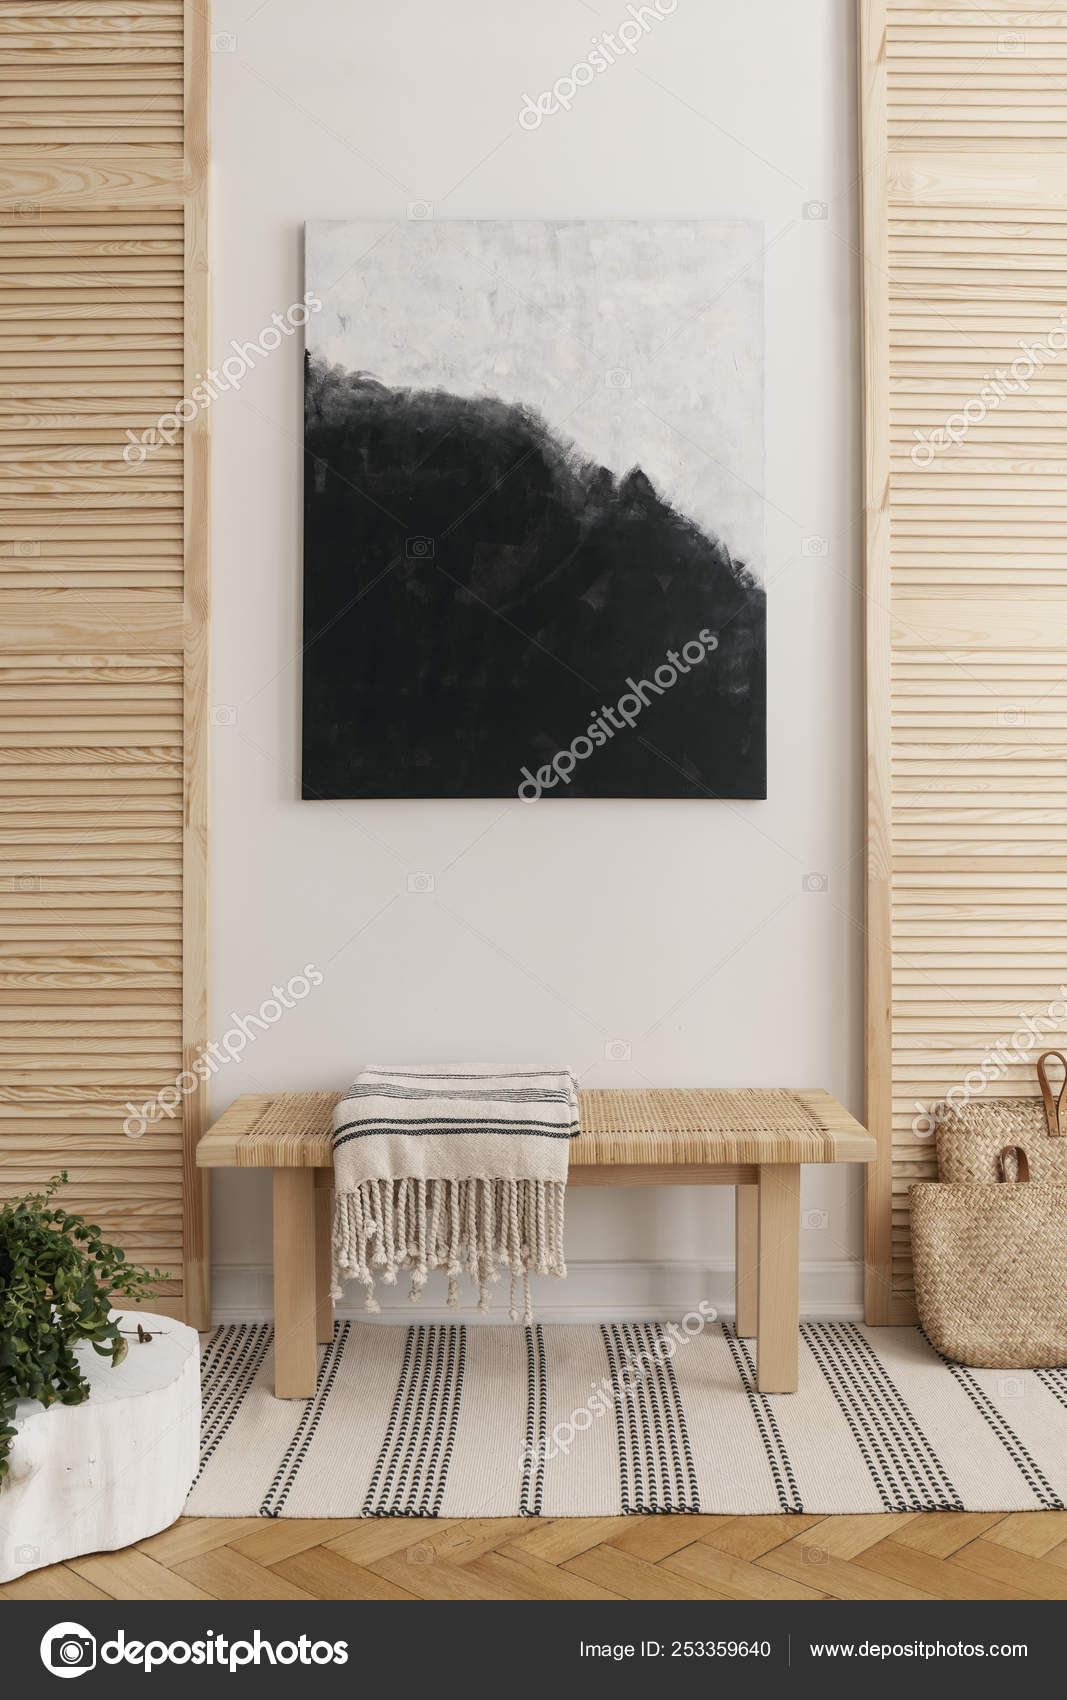 Black And White Painting Above Wooden Bench With Striped Blanket In